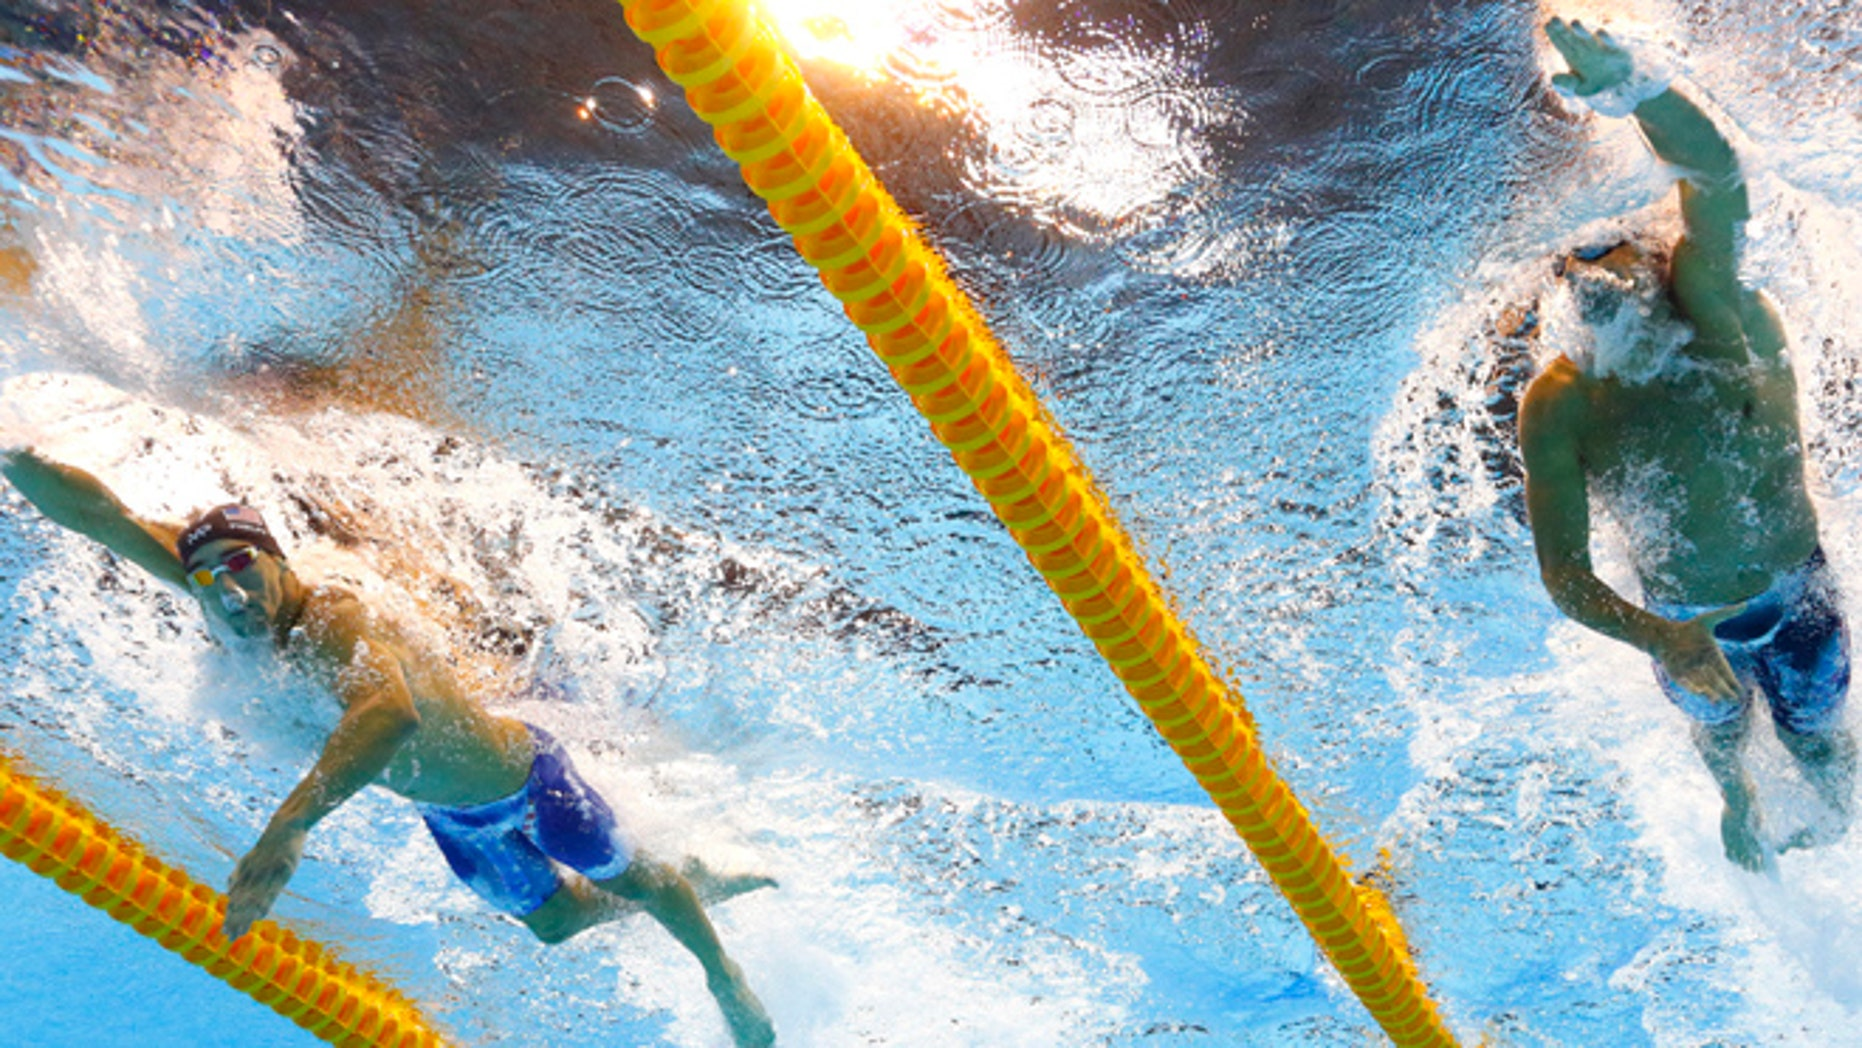 United States' Michael Phelps, left, and Ryan Lochte compete in a semifinal of the men's 200-meter individual medley during the swimming competitions at the 2016 Summer Olympics in Rio de Janeiro, Brazil, Wednesday, Aug. 10, 2016.